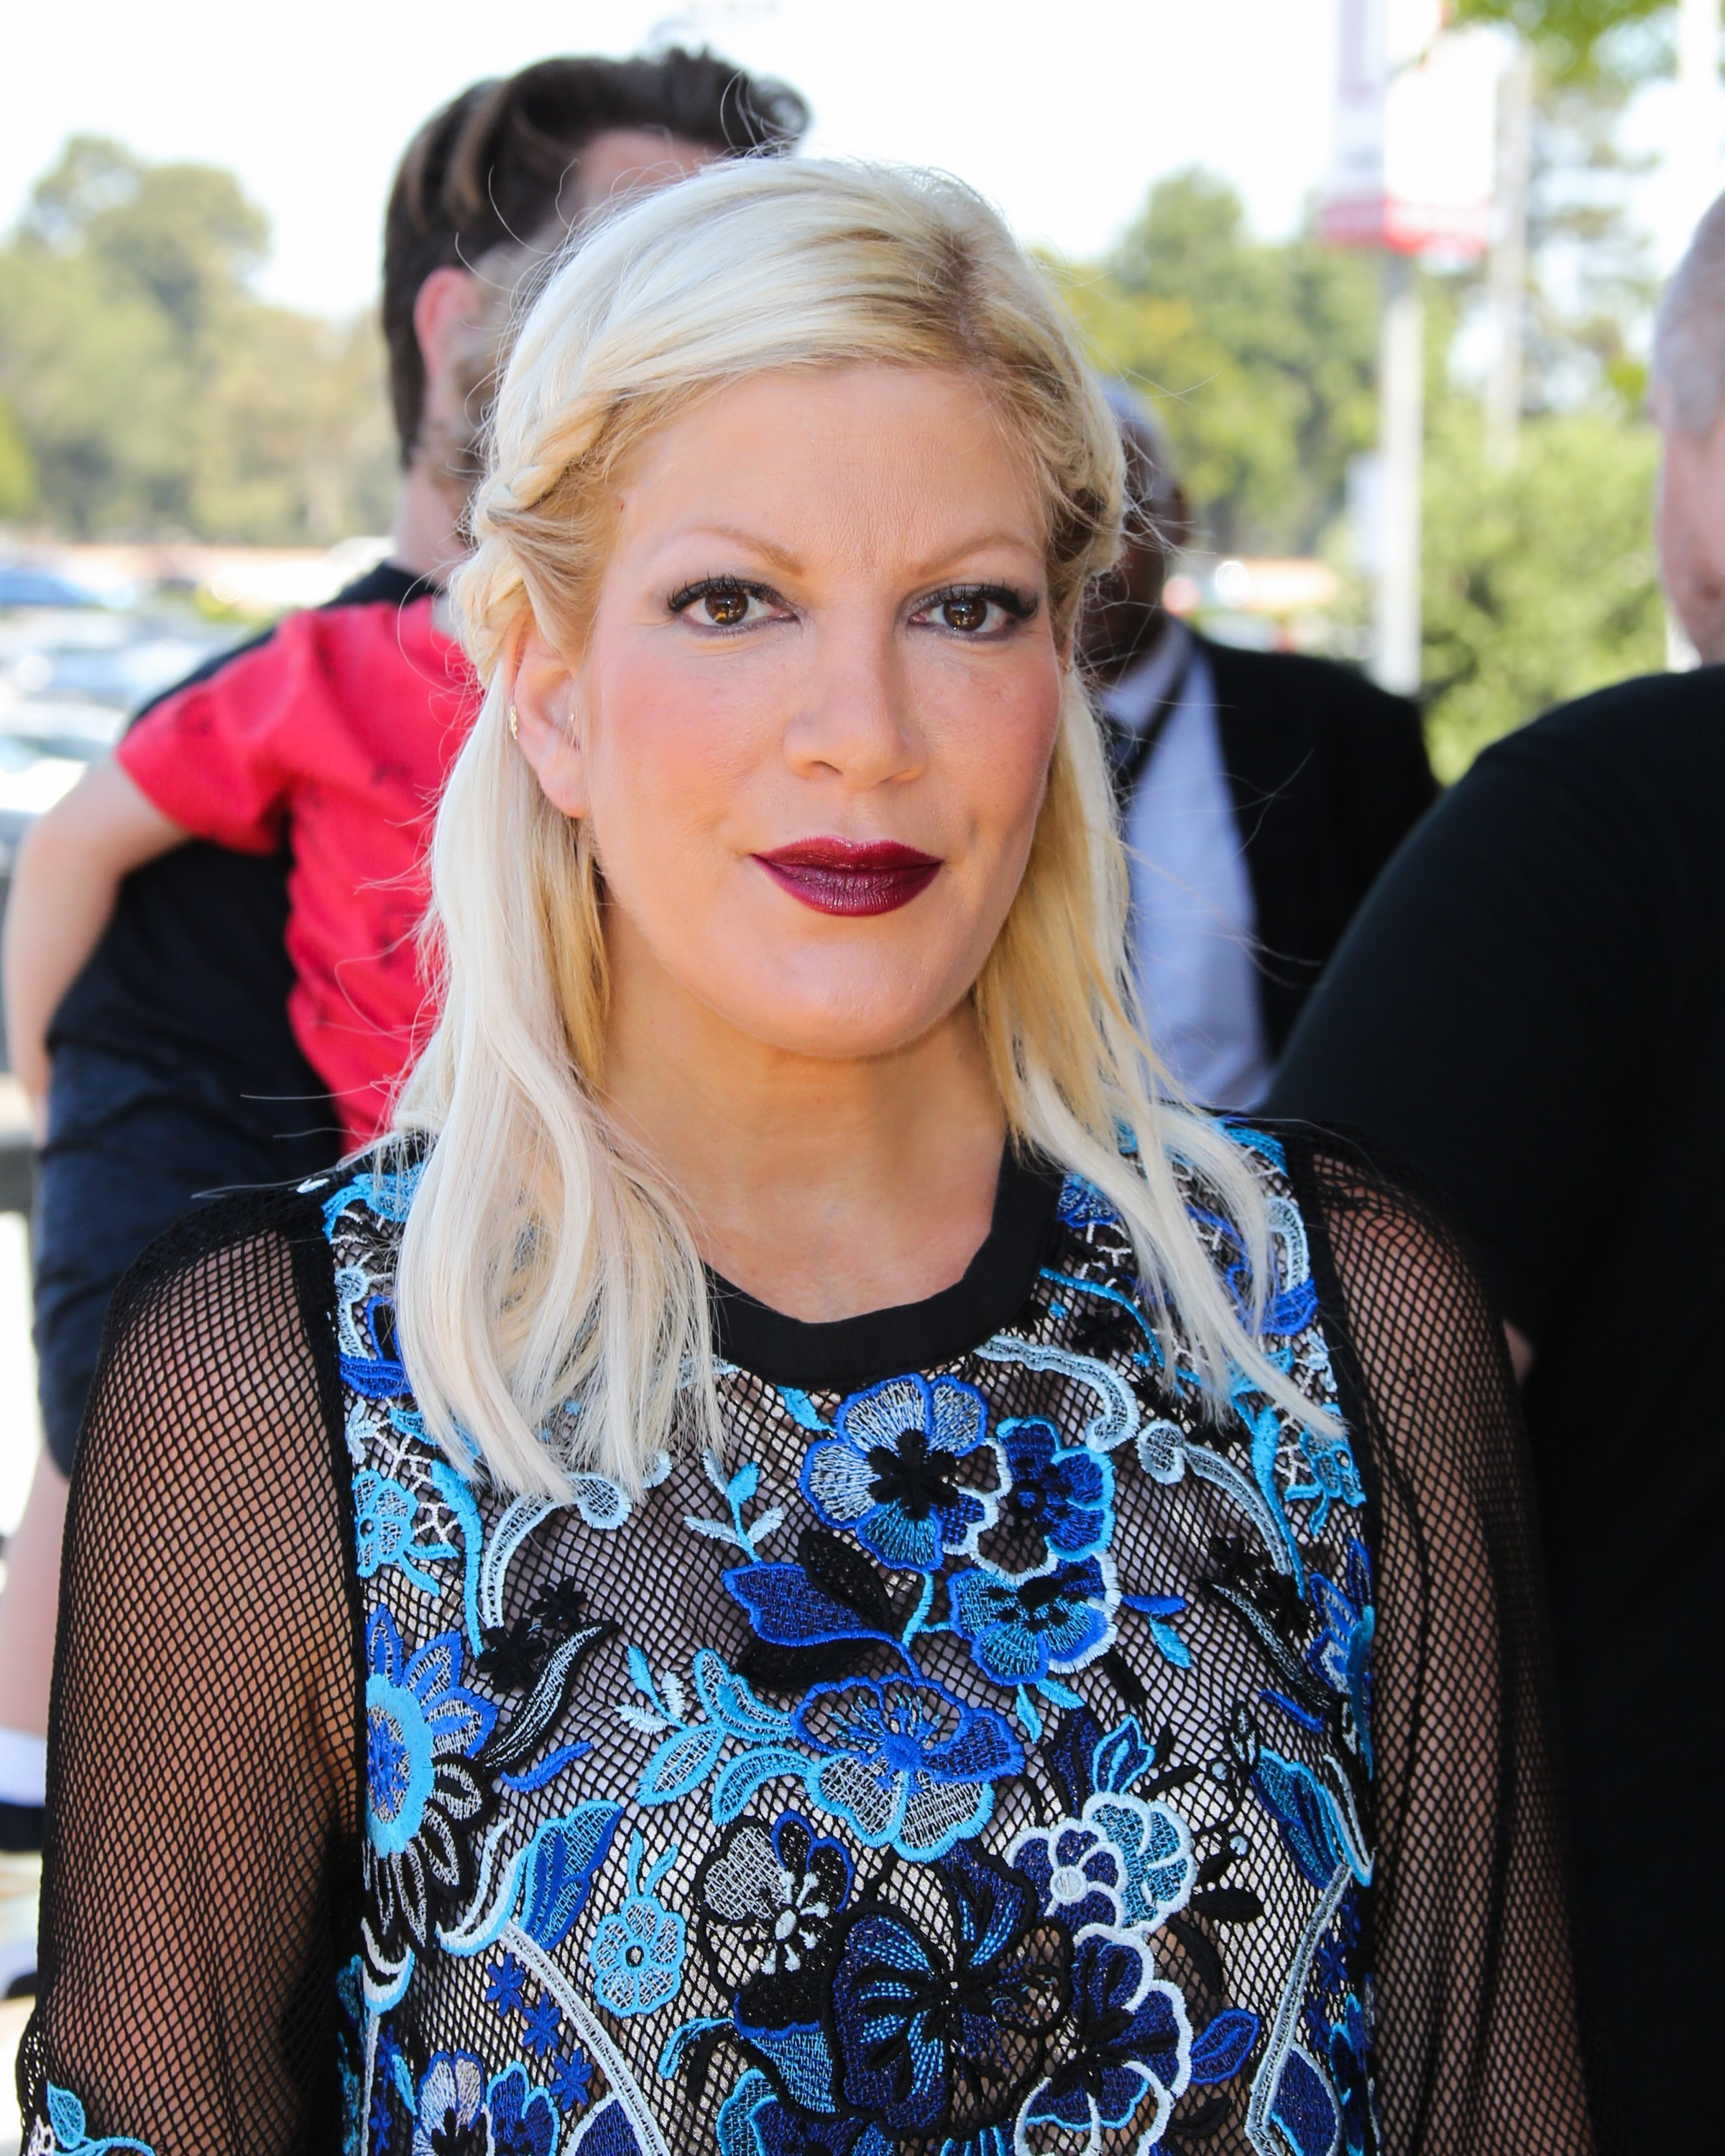 Tori Spelling, former actor of Beverly Hills 90210 | Photo: Getty Images